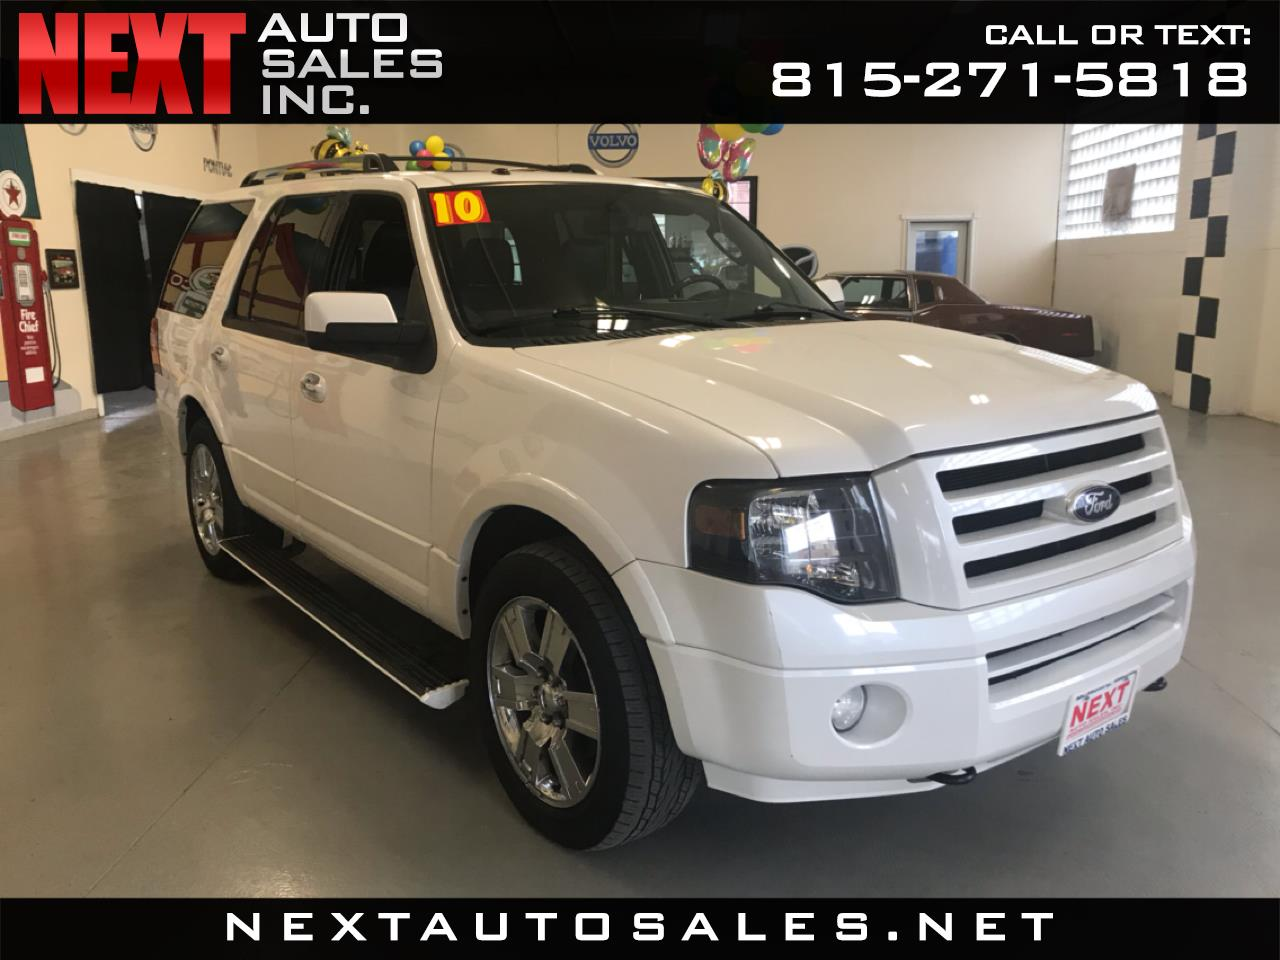 2010 Ford Expedition 4WD 4dr Limited